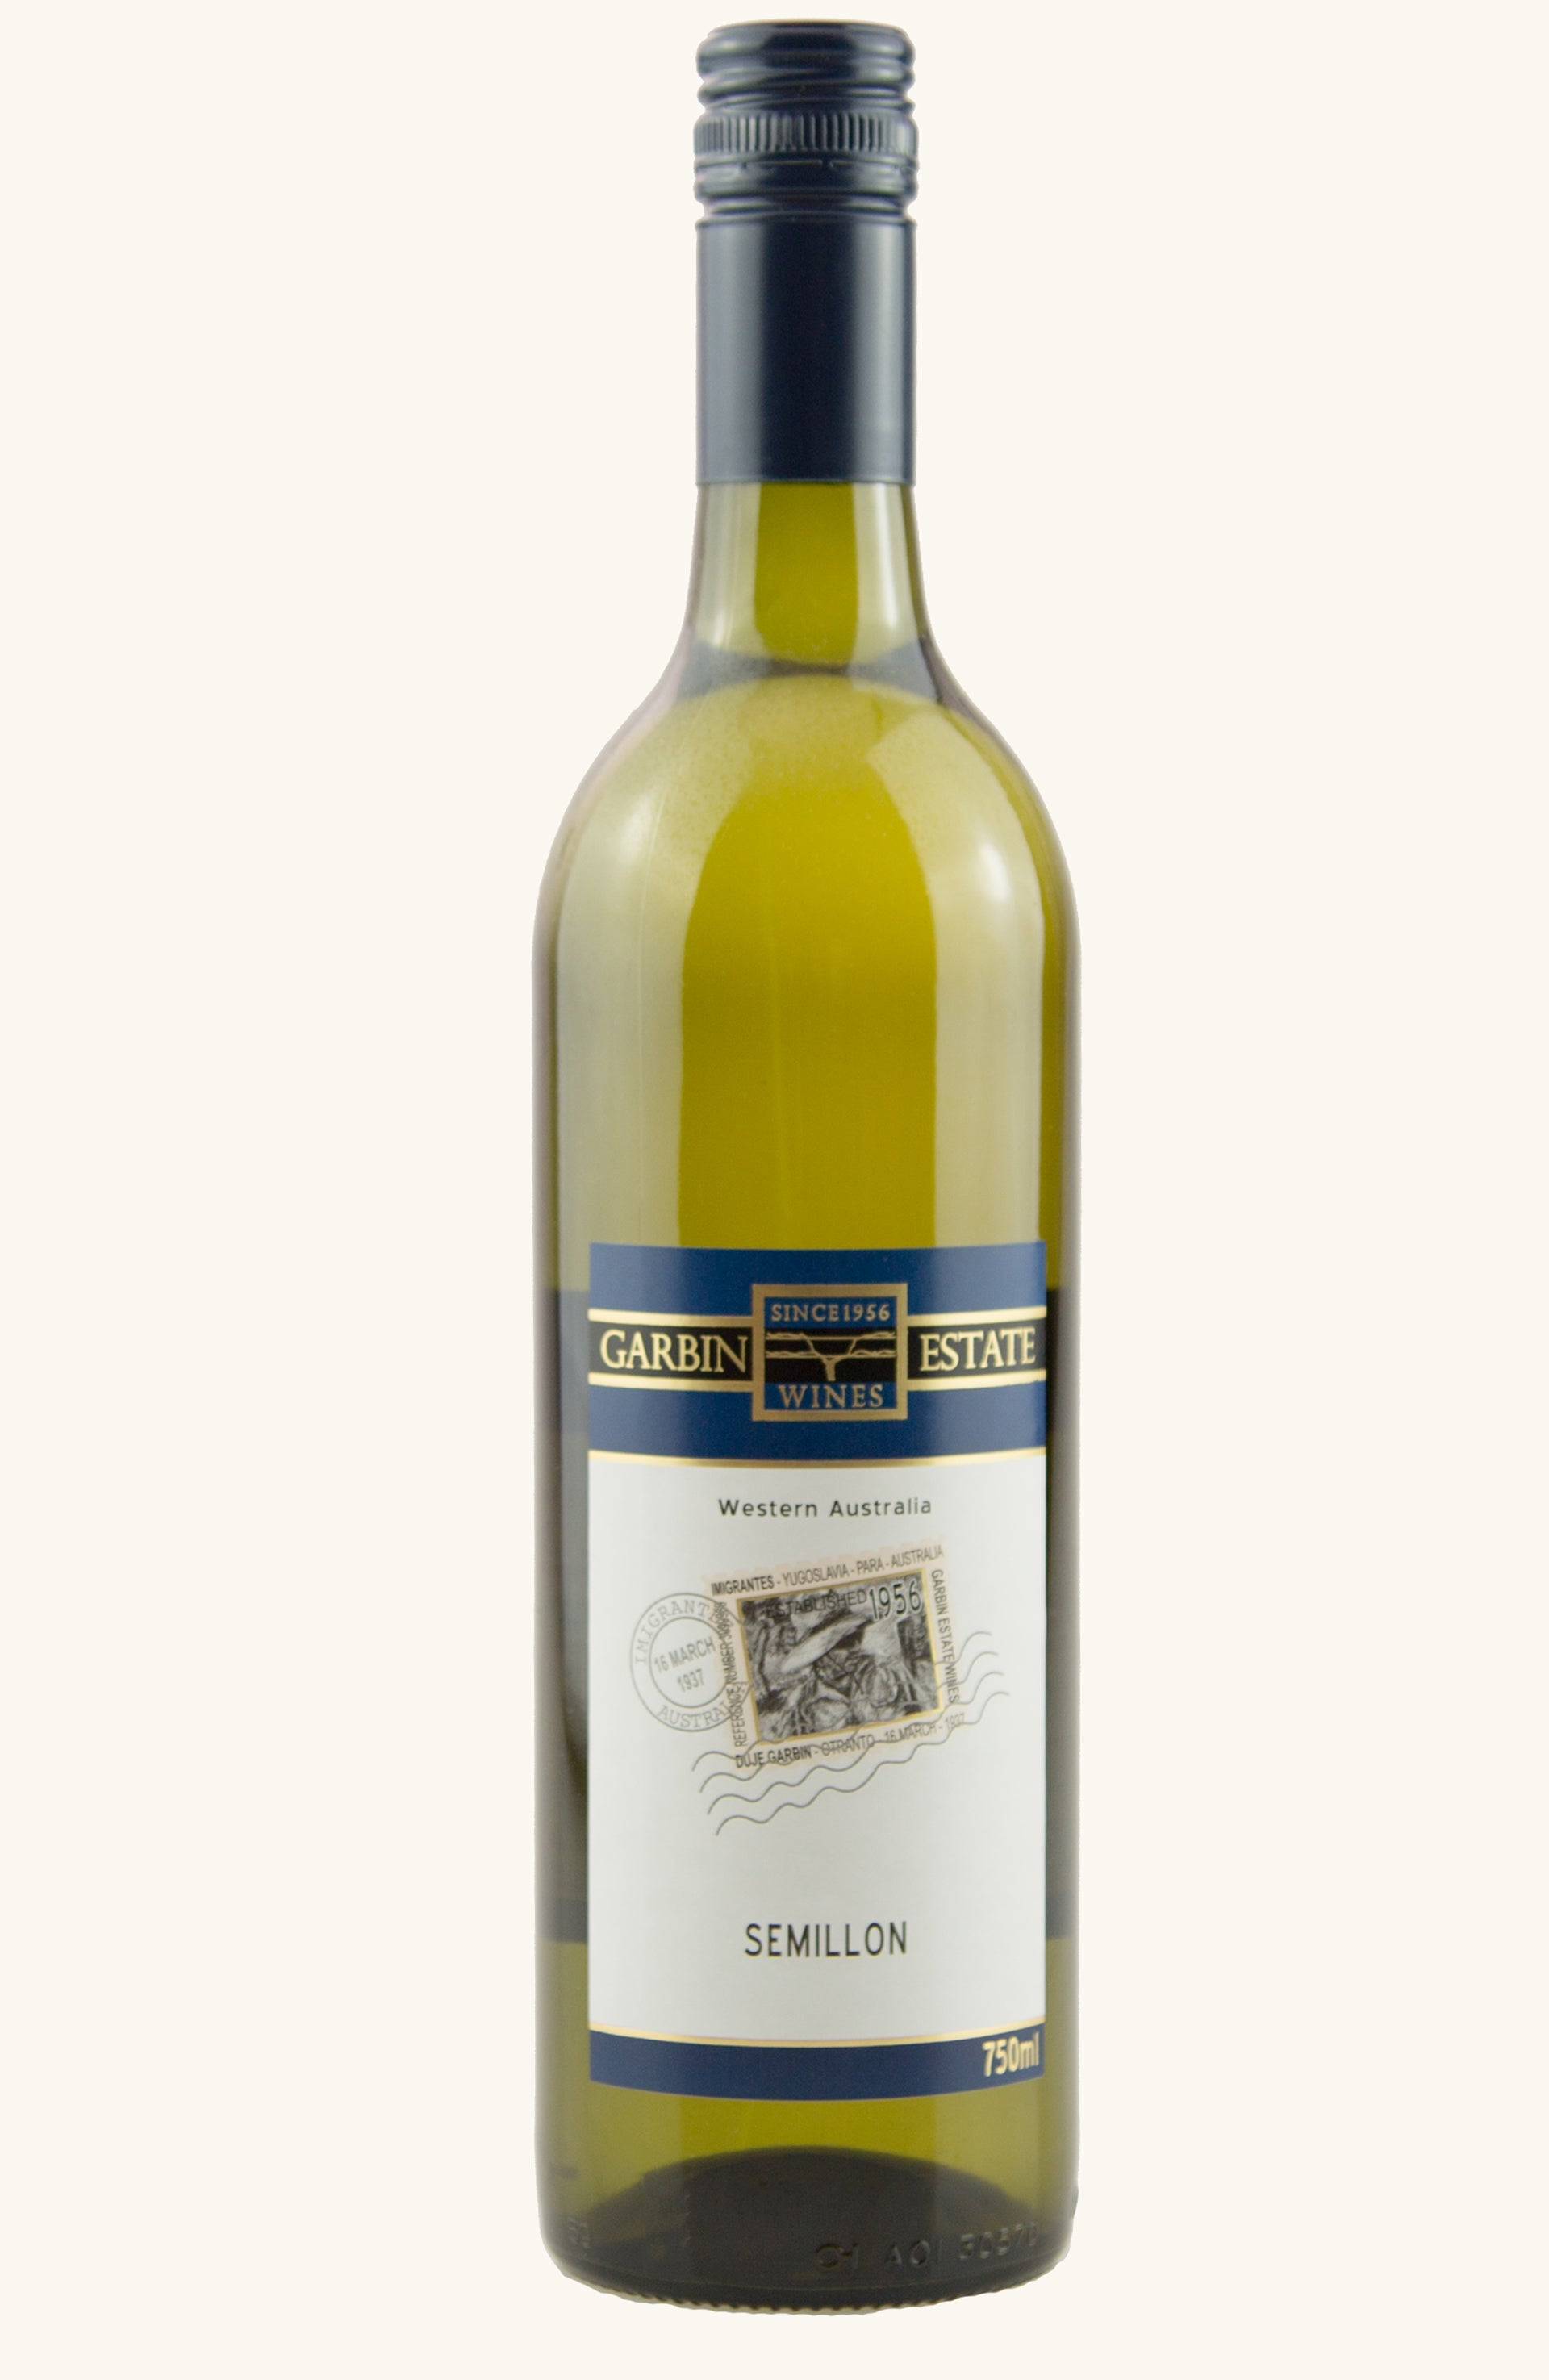 2012 Semillon Garbin Estate Wines